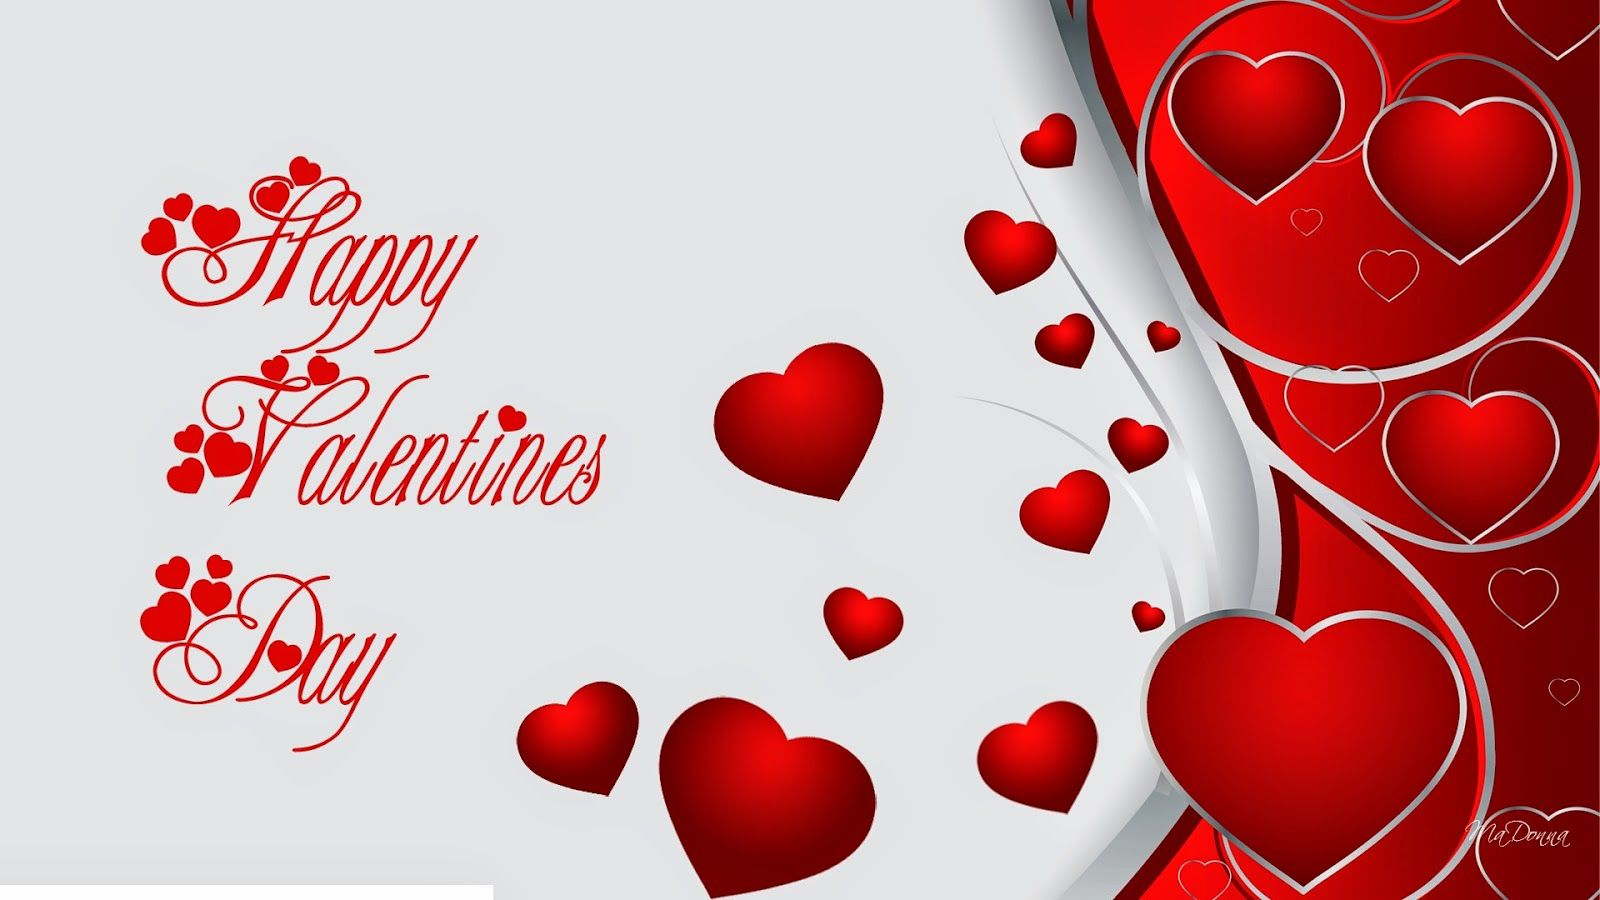 Happy Valentines Day Greetings Cards Free.